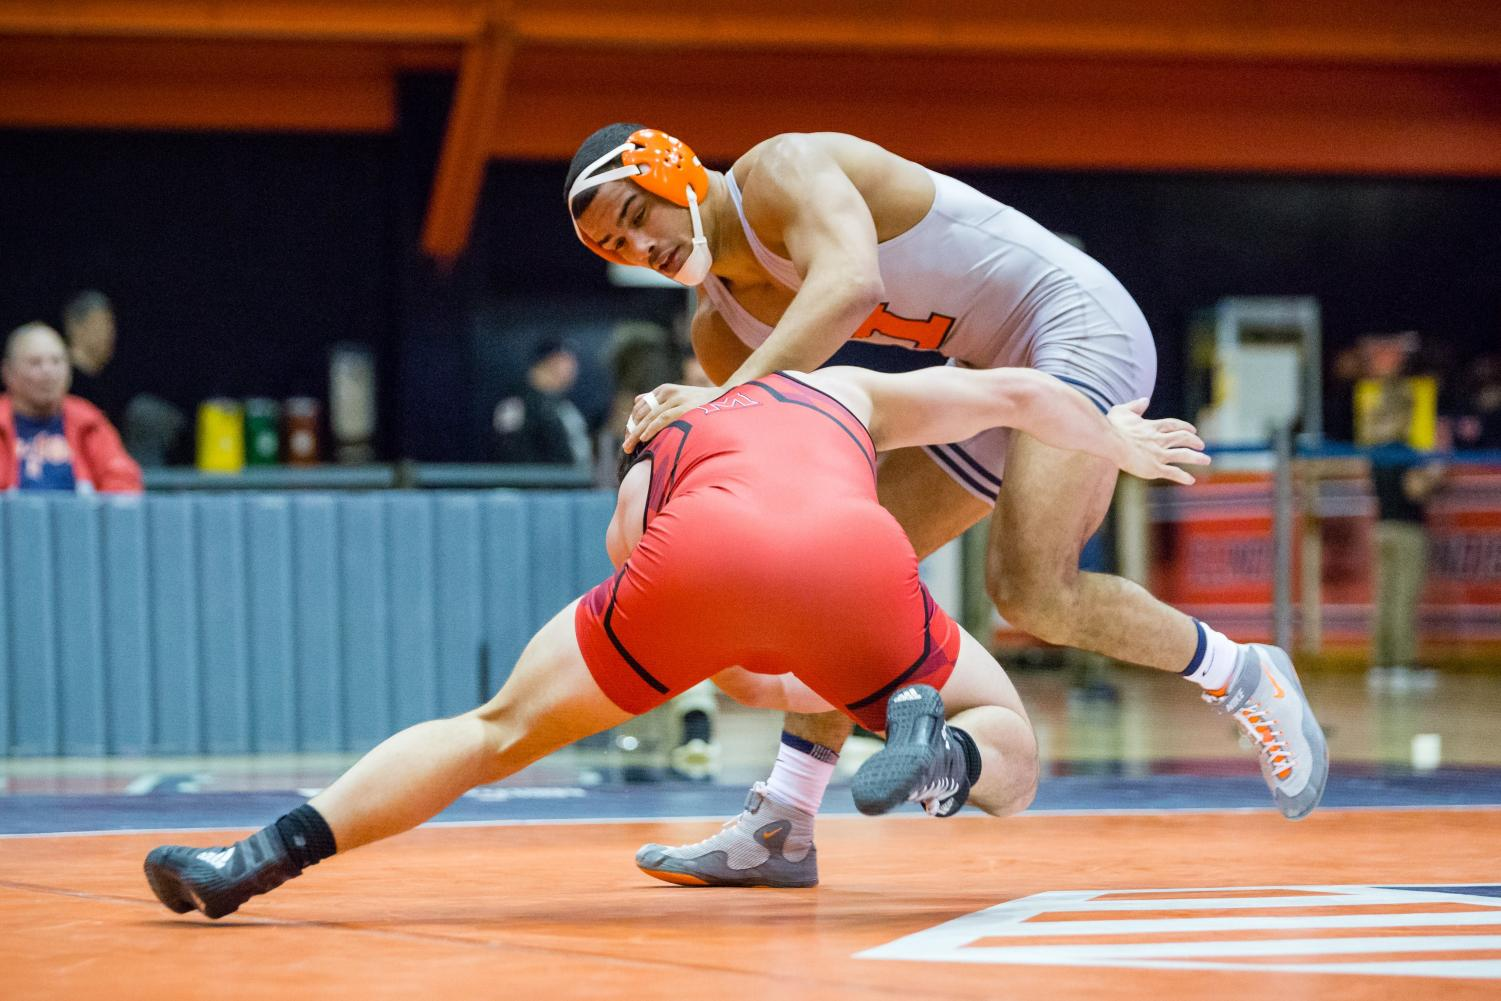 Illinois' Emery Parker wrestles with Maryland's Niko Capello in the 184 pound weight class during the meet at Huff Hall on Sunday, Jan. 28, 2018. The Illini won 25-18.